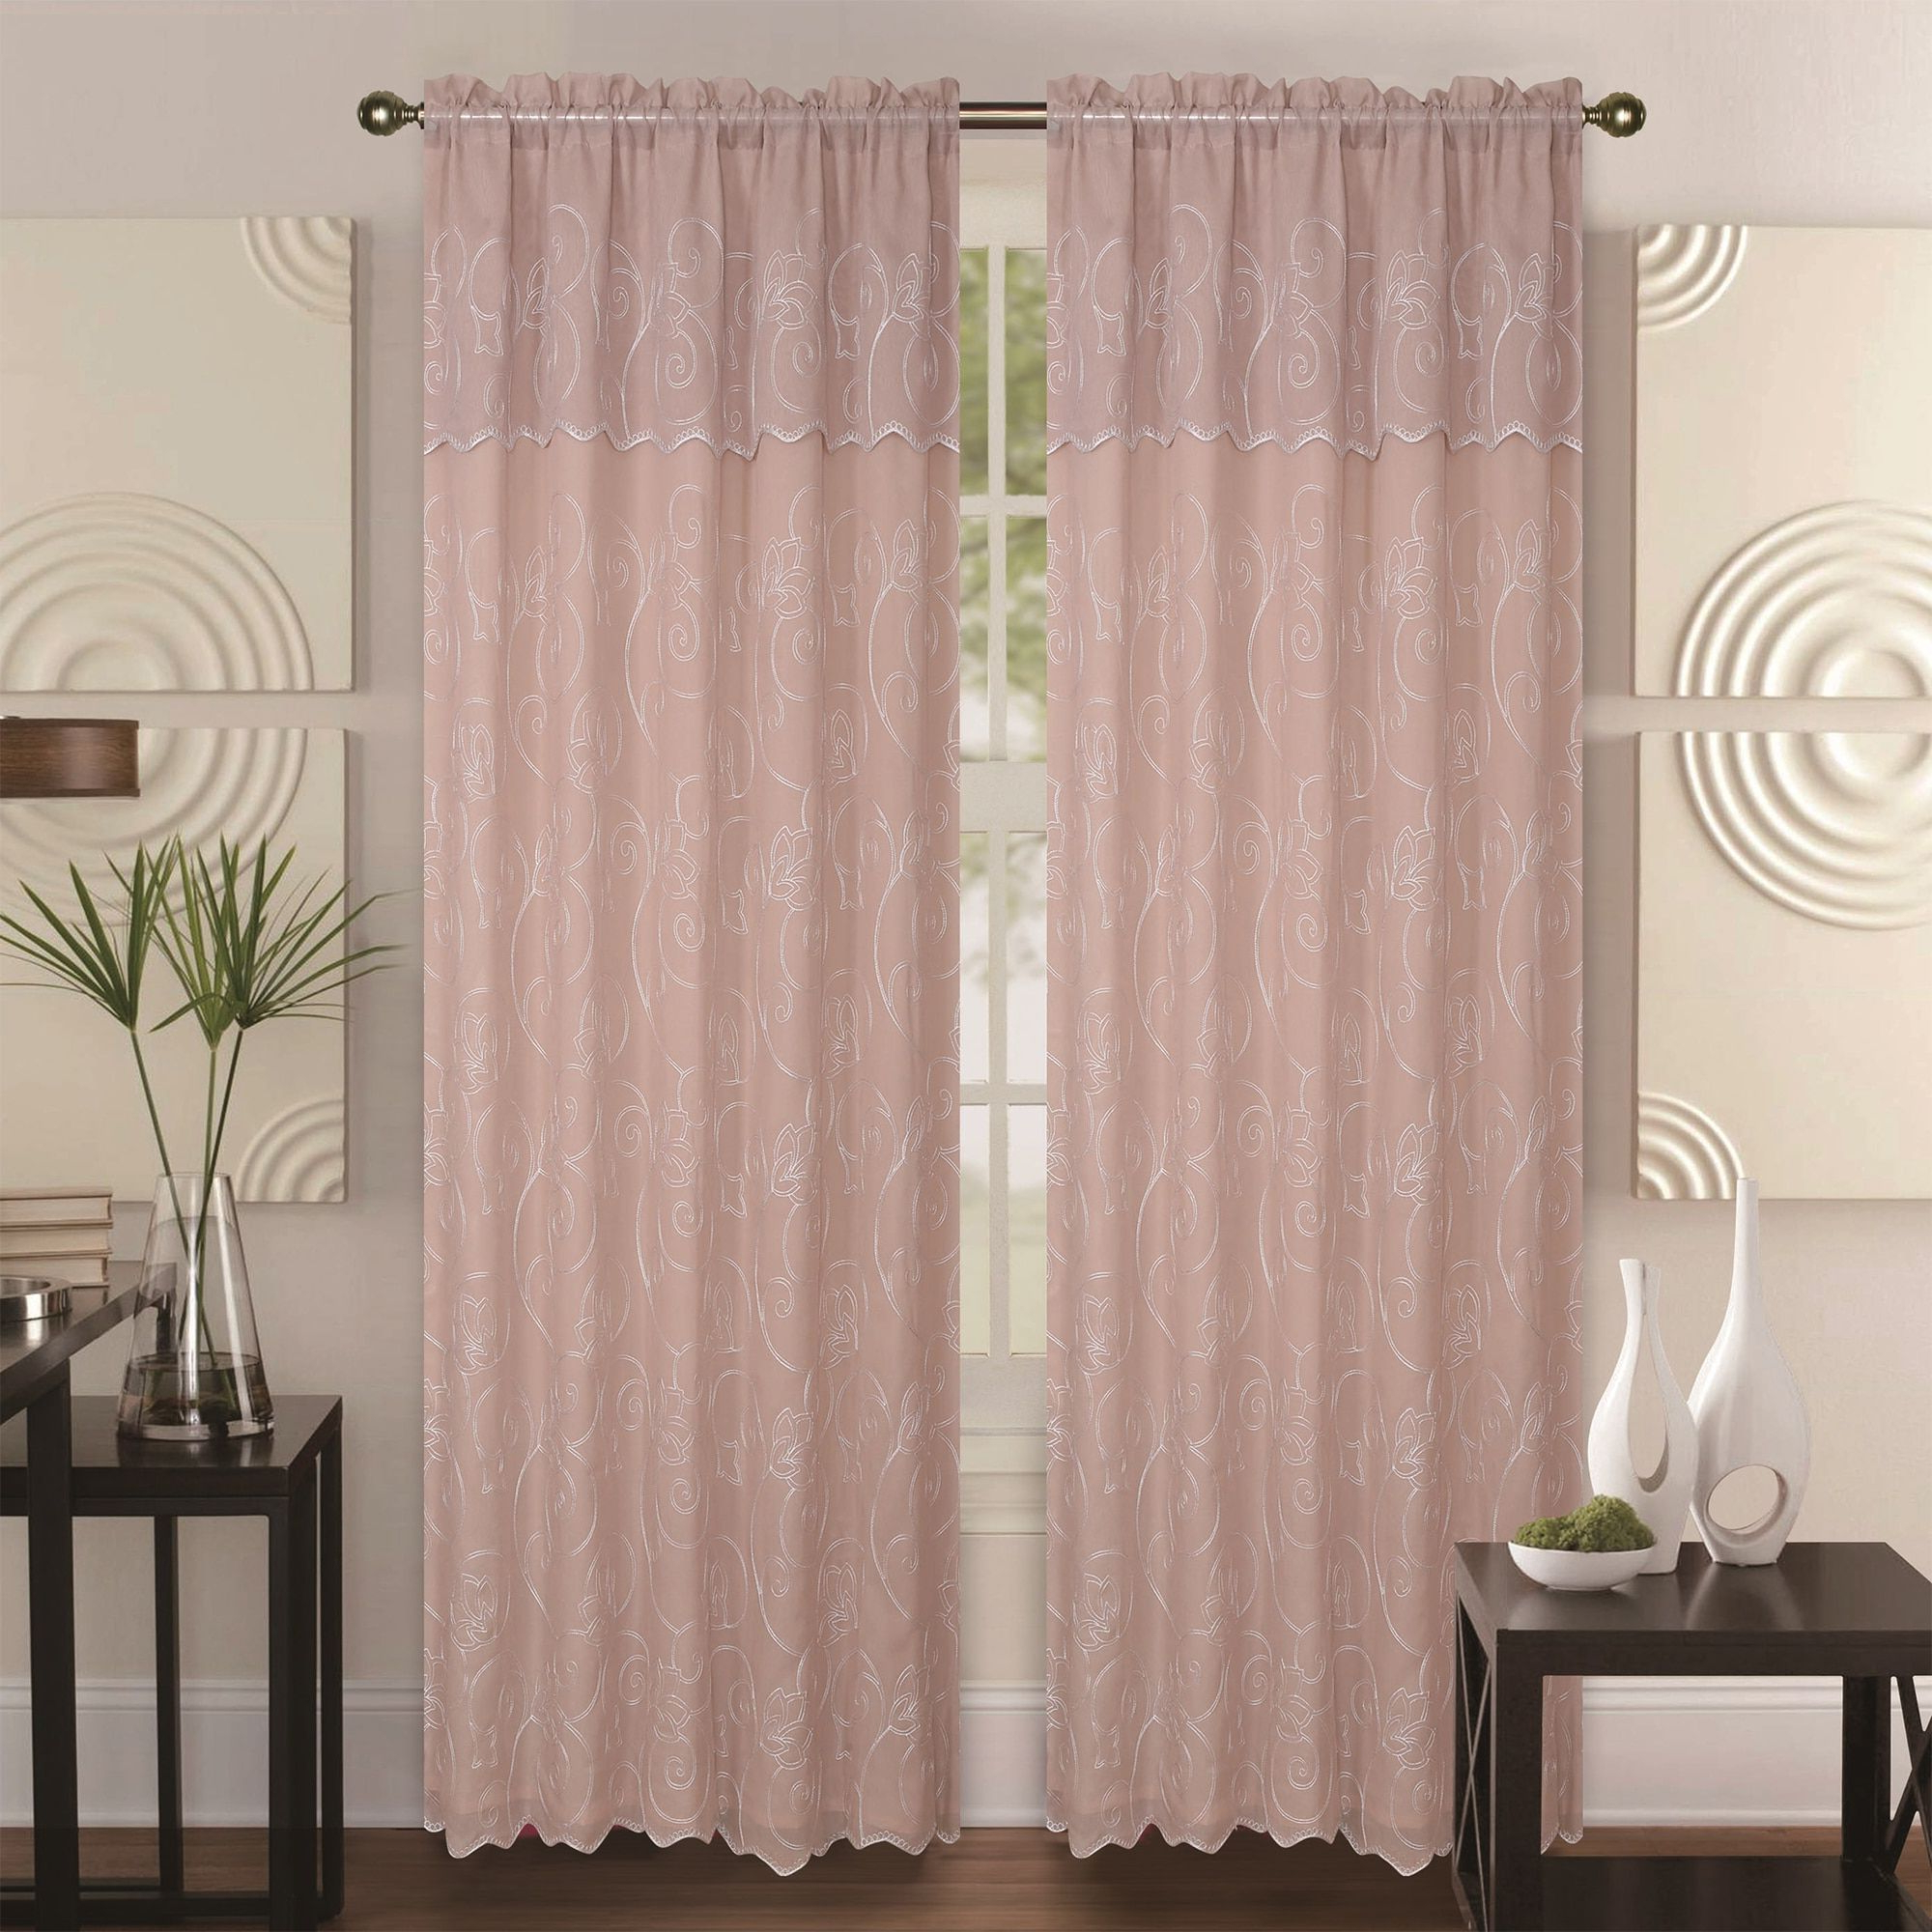 2021 Ofloral Embroidered Faux Silk Window Curtain Panels Within Double Layer Embroidery Floral Sheer Linen Front / Faux Silk (View 20 of 20)